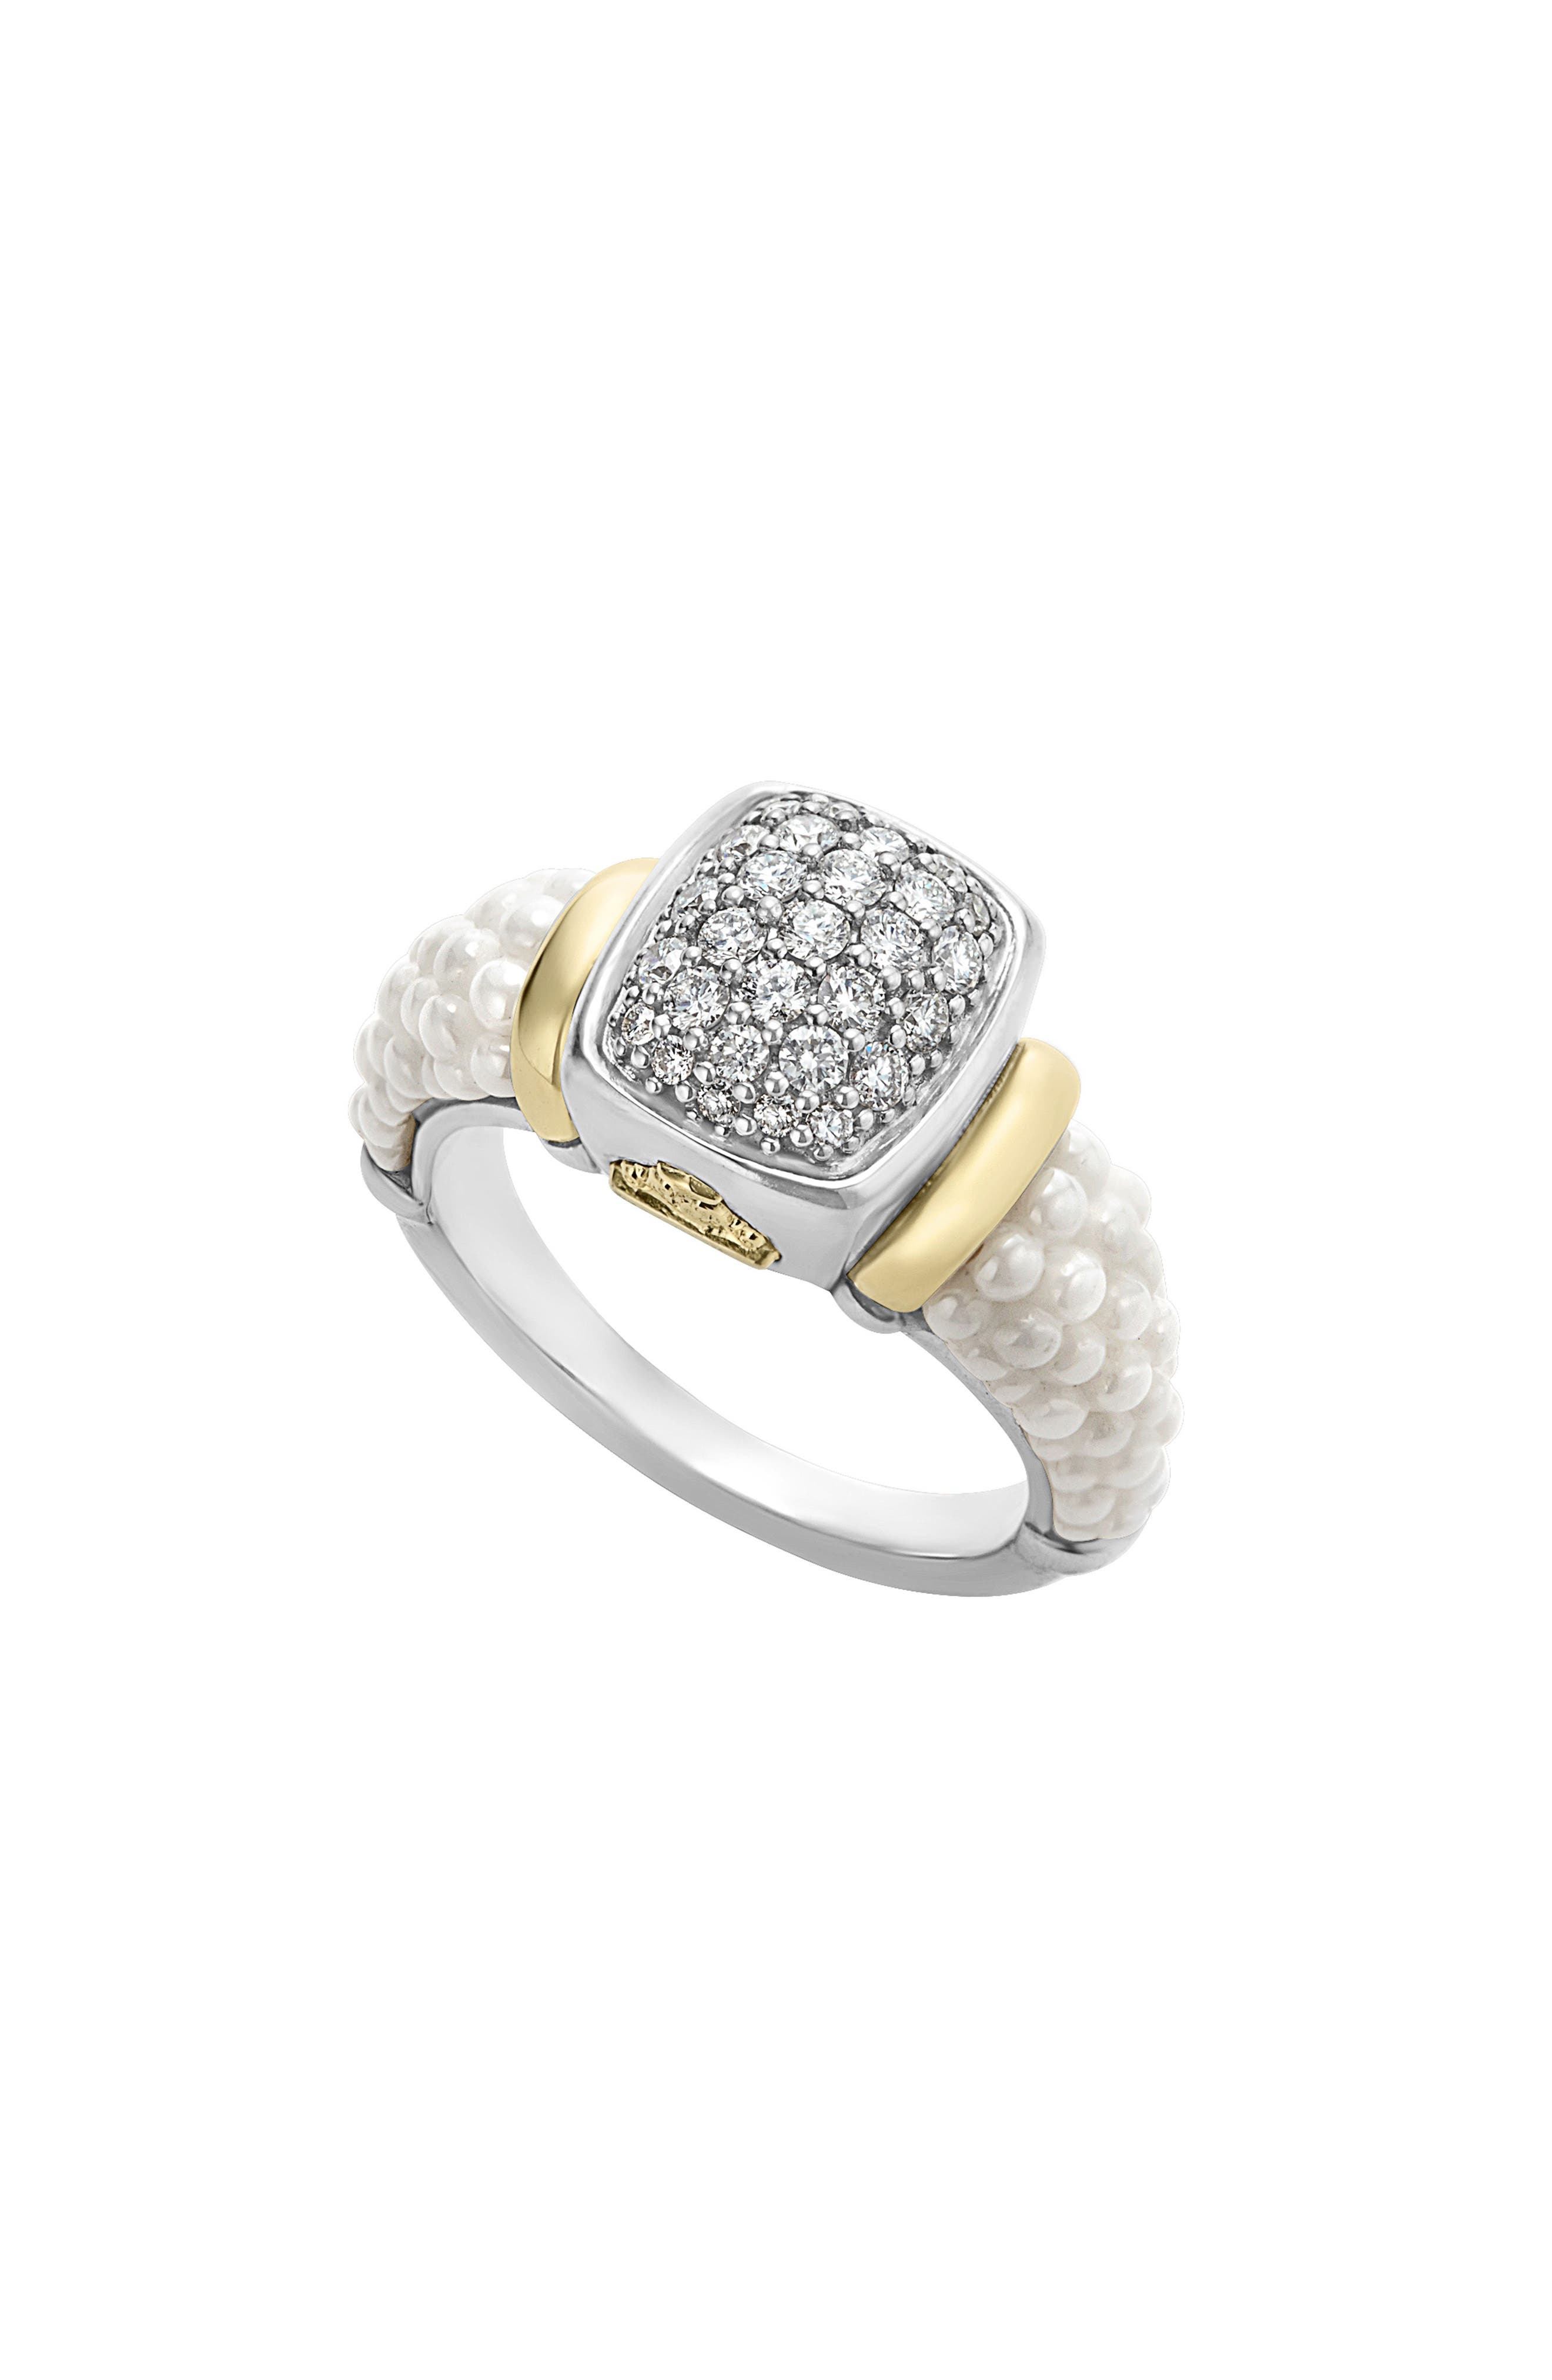 Main Image - LAGOS 'Caviar' Diamond Ring